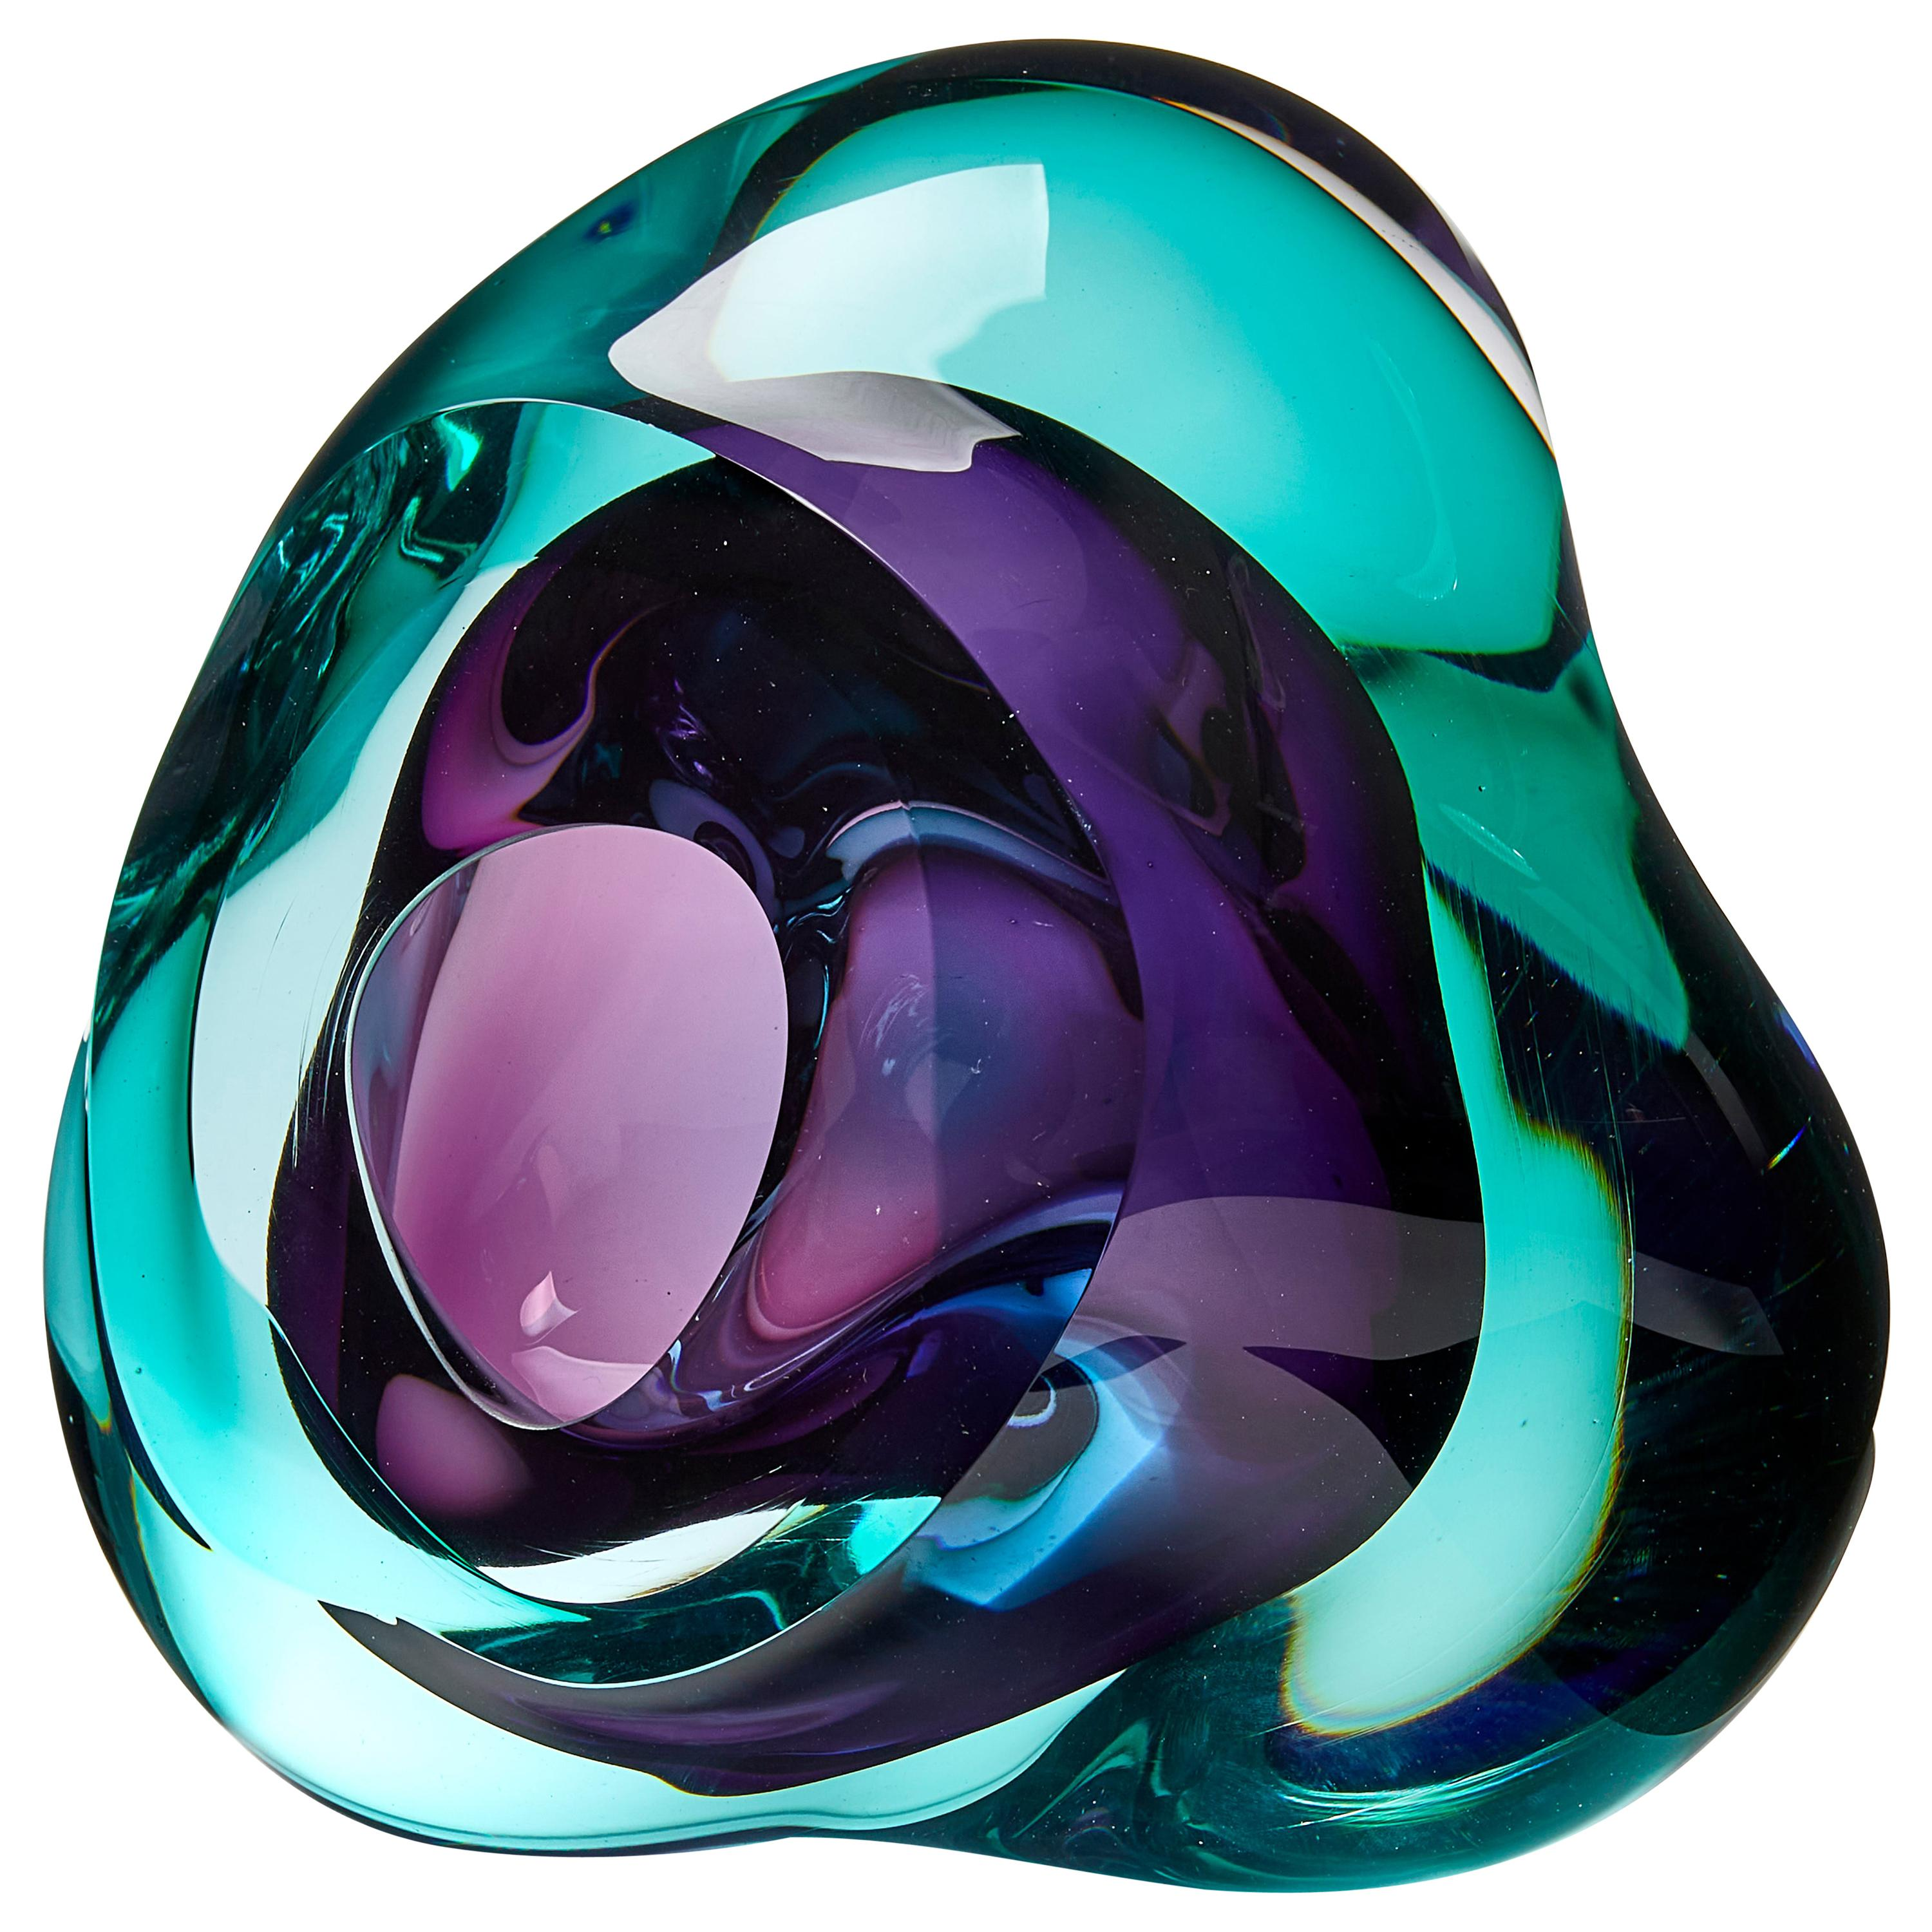 Vug in Emerald and Purple, a Unique Glass Sculpture by Samantha Donaldson